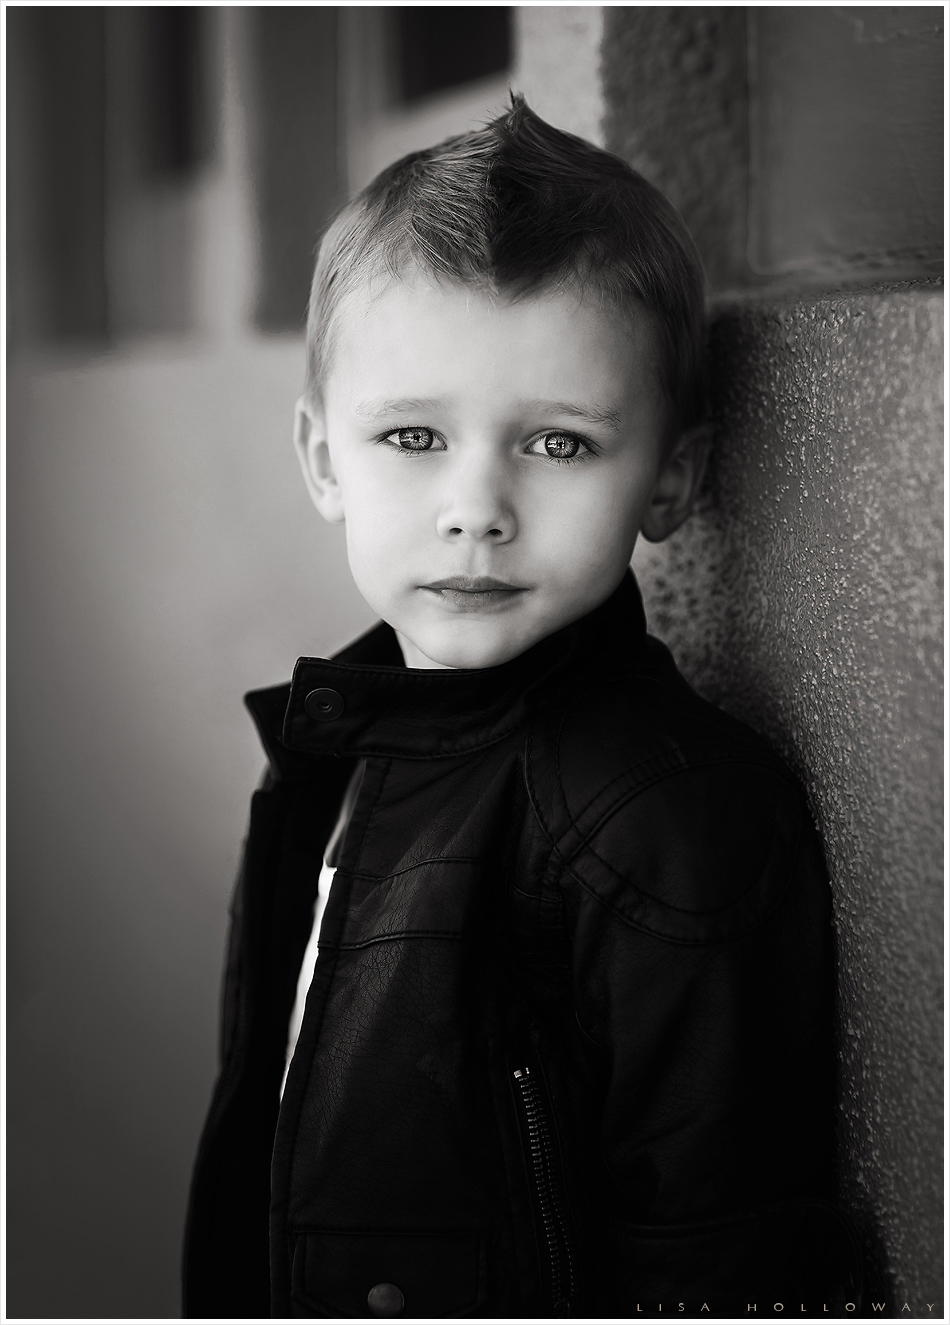 Black and white portrait of a handsome little boy in a leather jacket. LJHolloway Photography is a Las Vegas Children's Photographer